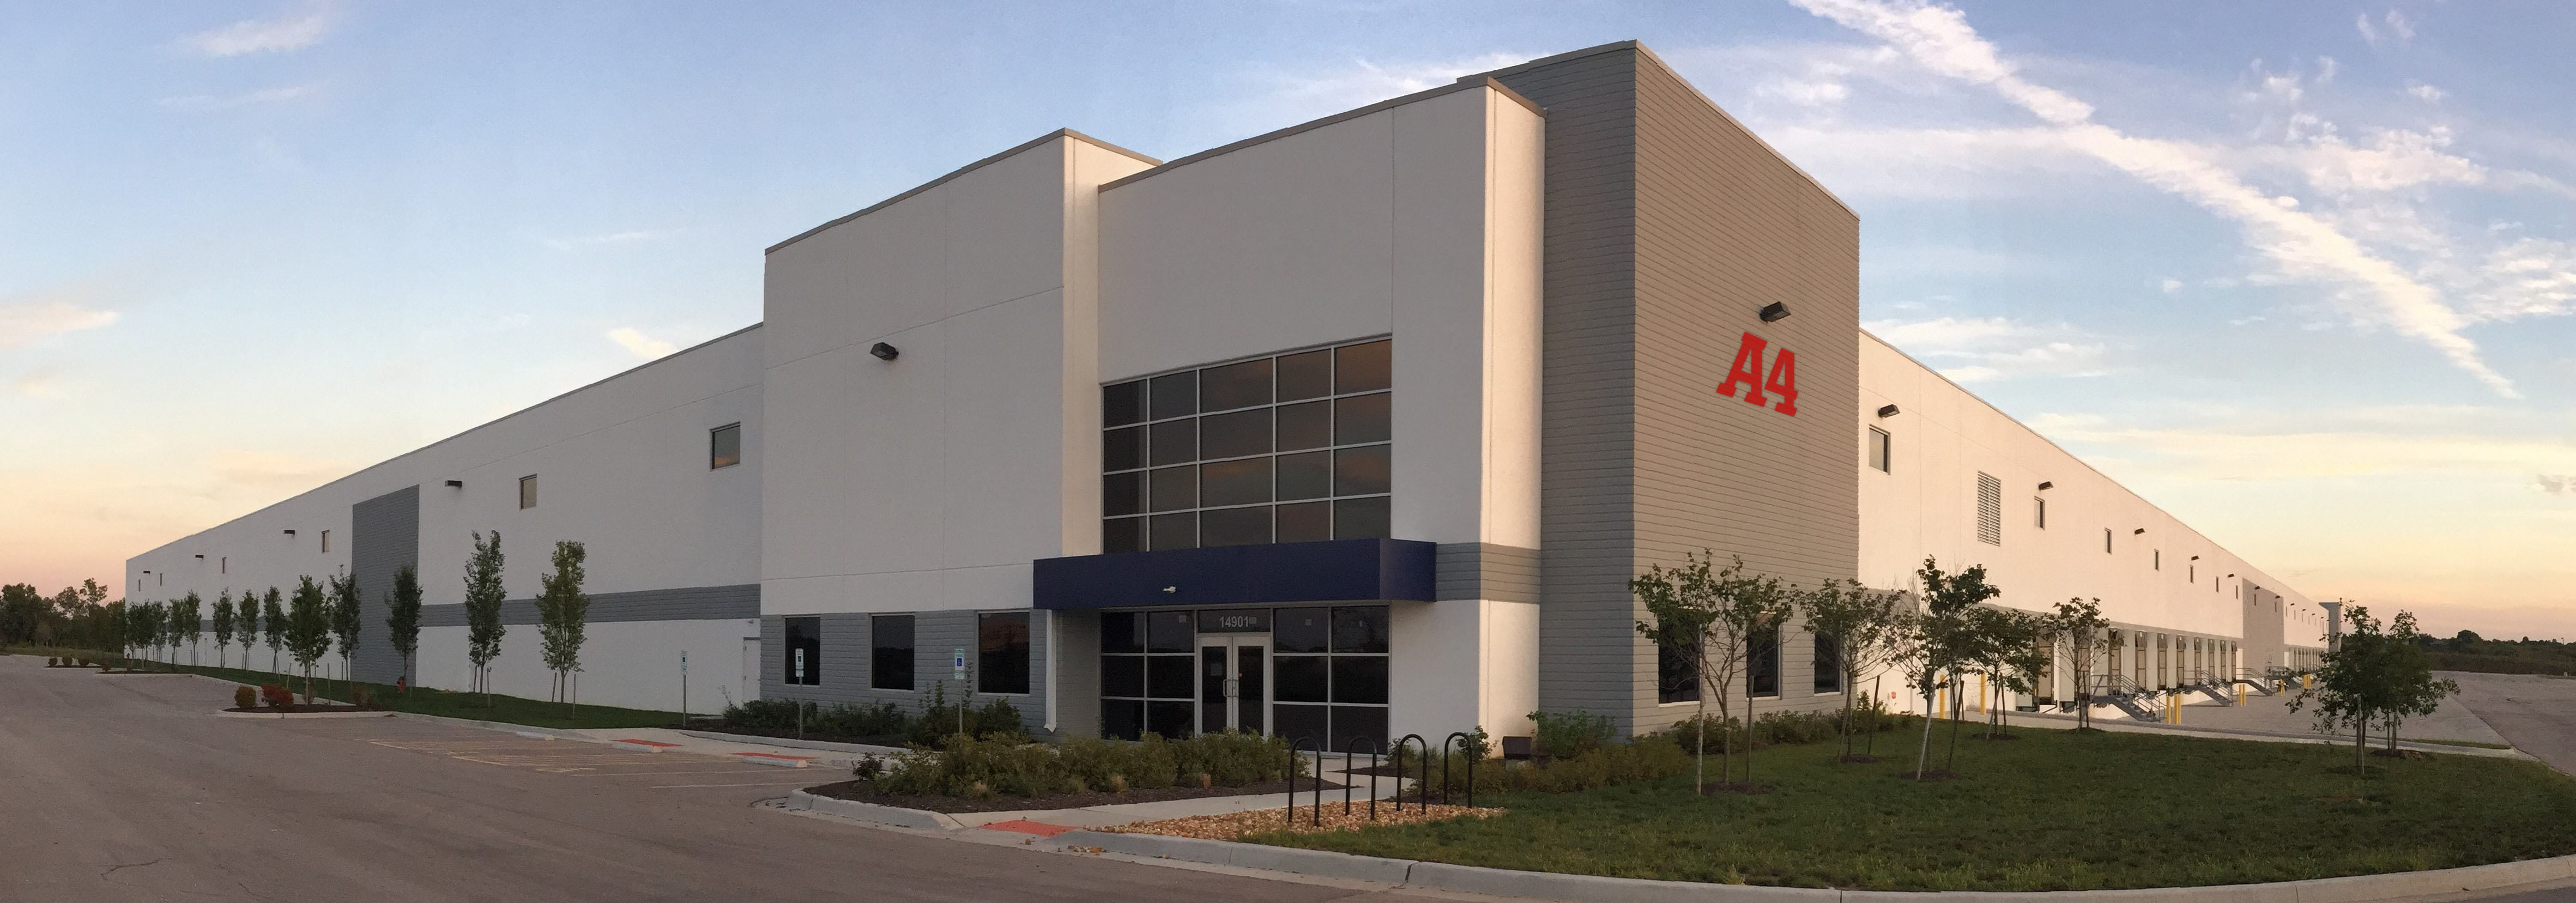 A4 Expands With New Warehouse in Kansas City, Missouri